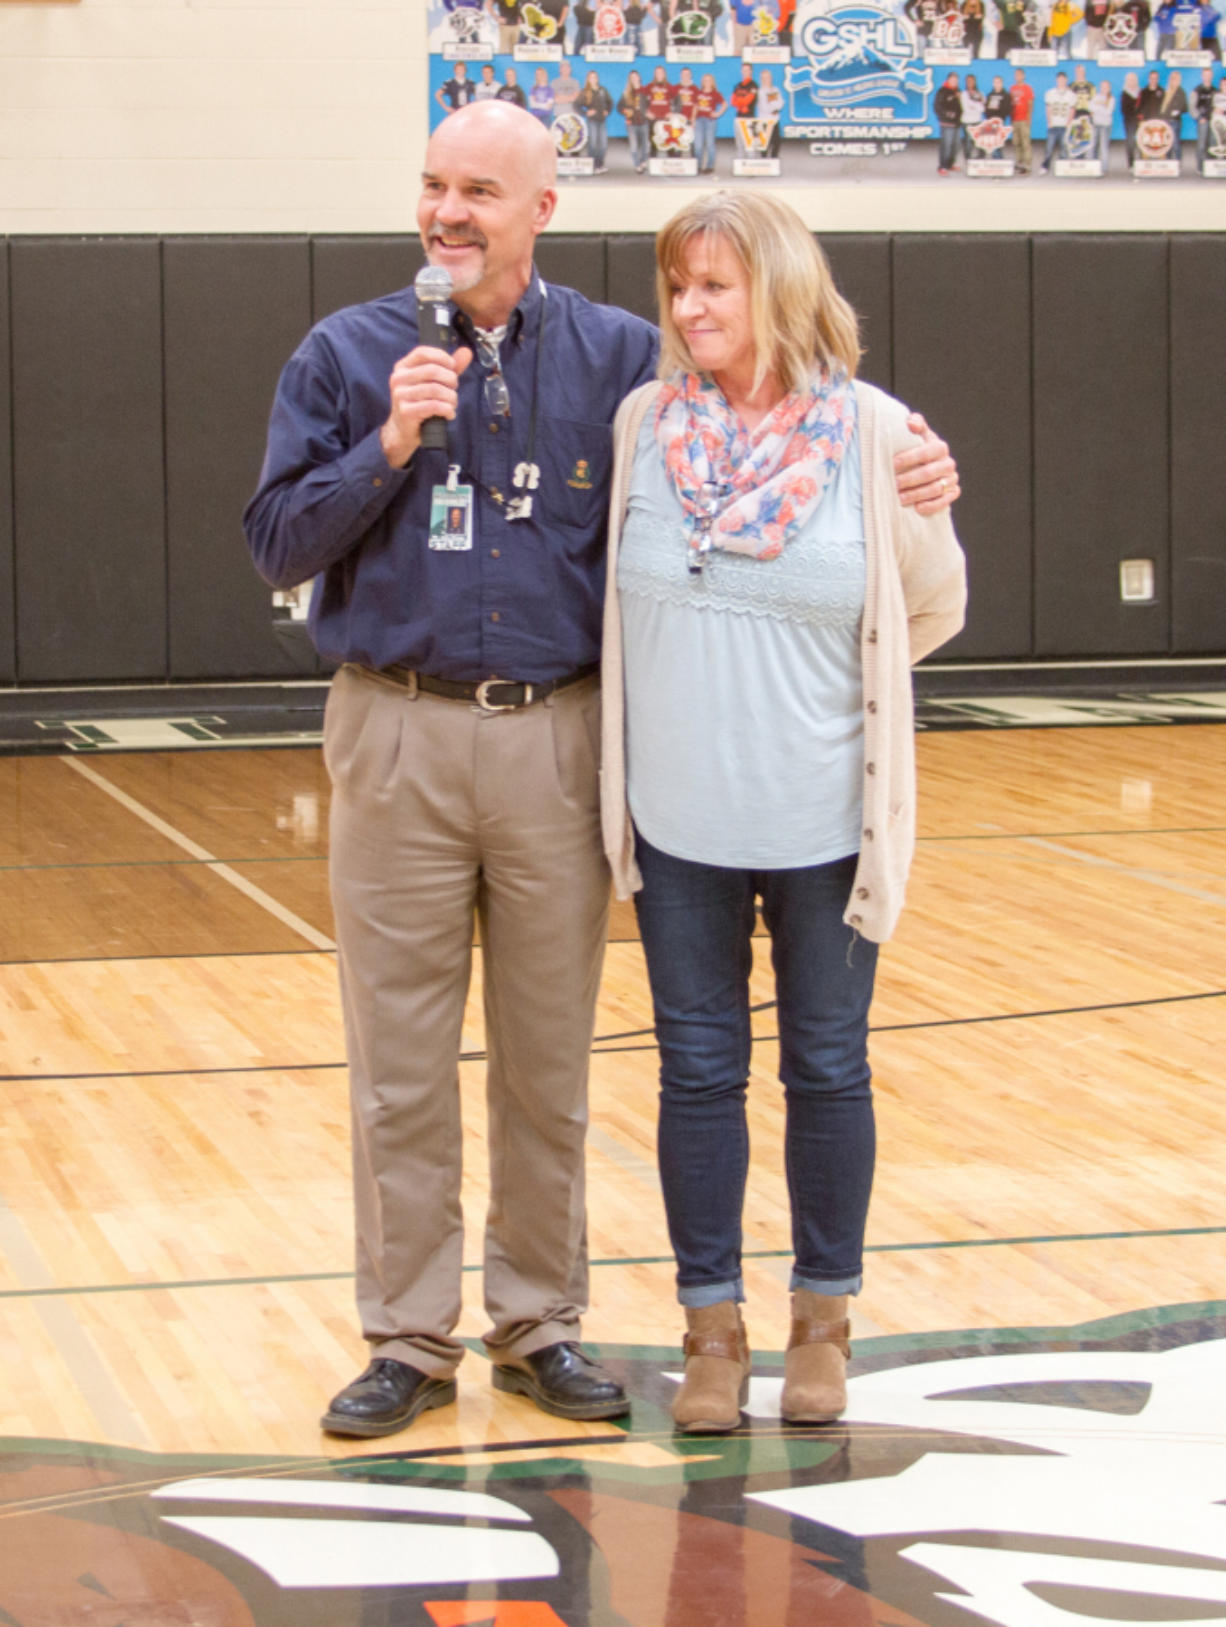 Woodland: Woodland High School Principal John Shoup congratulates Mary Ann Sturdivan, school counselor, for earning the 2017 Classified School Employee of the Year for the Educational Service District 112 region.